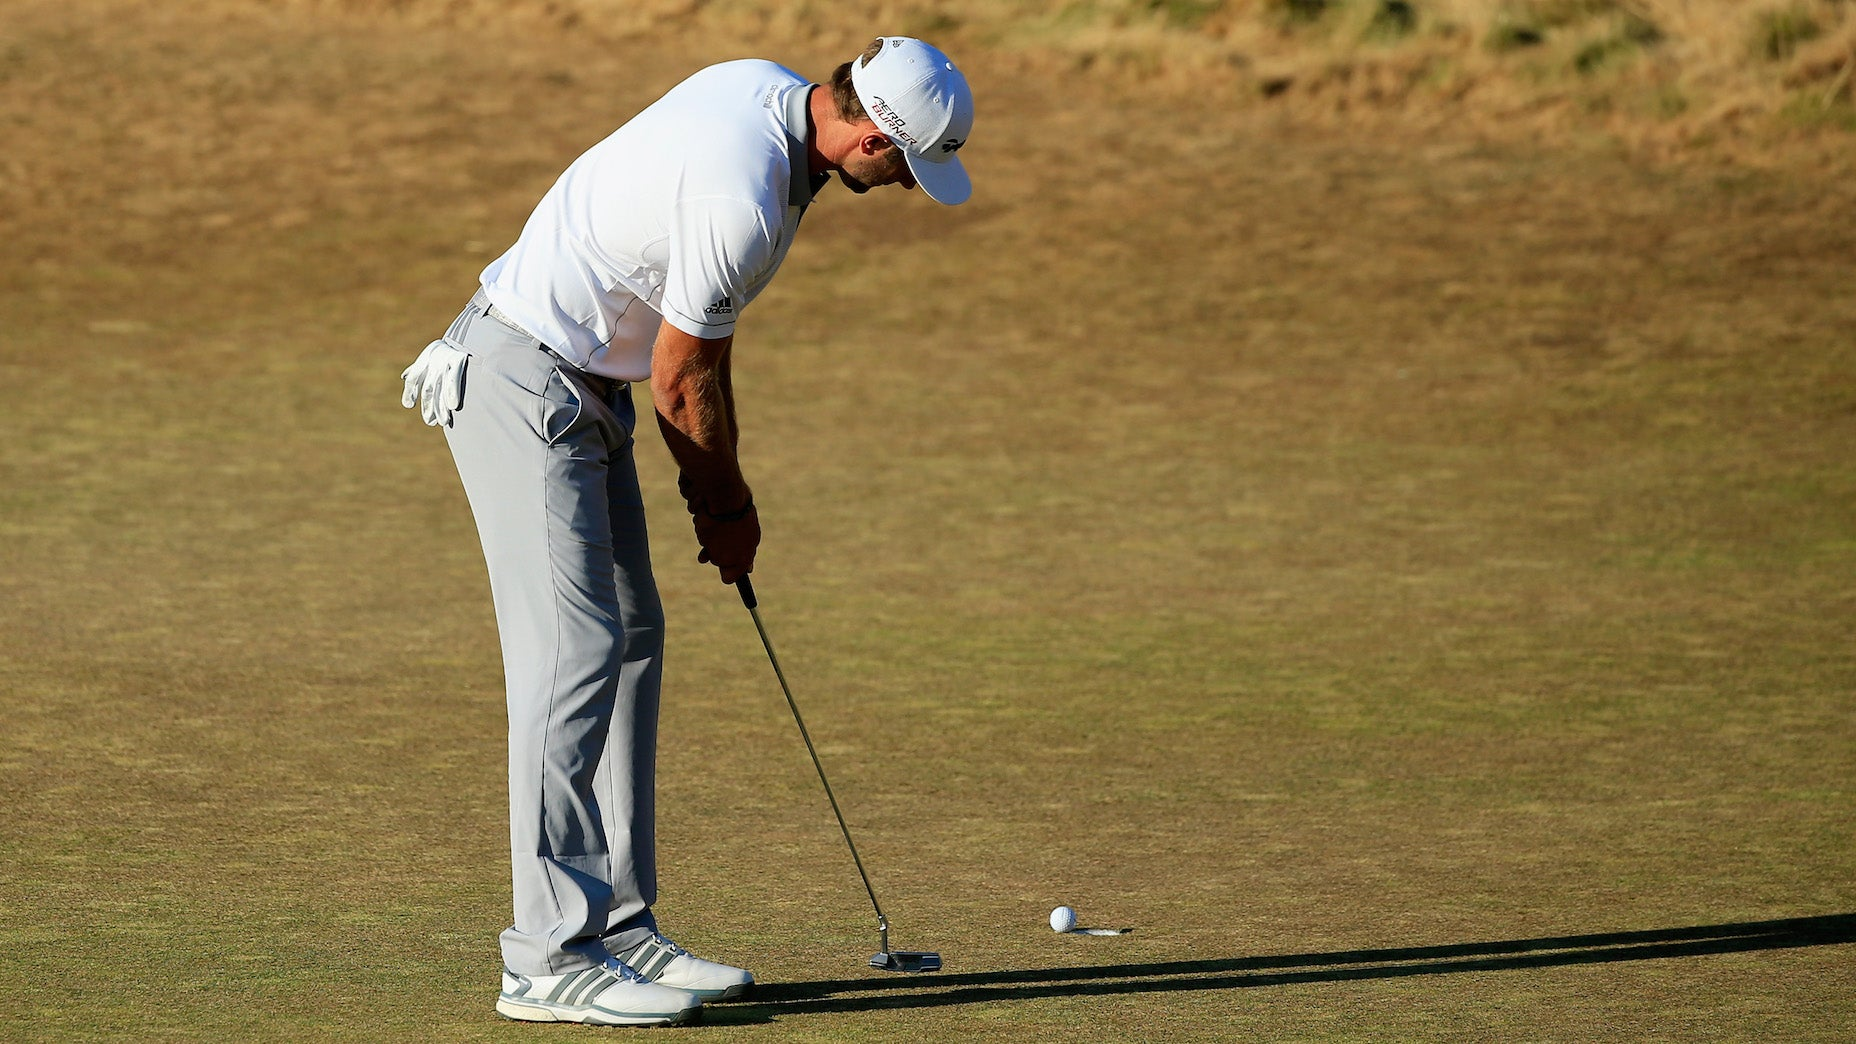 Dustin Johnson missed a short birdie putt at no. 18. What did that mean for the future of Chambers Bay?